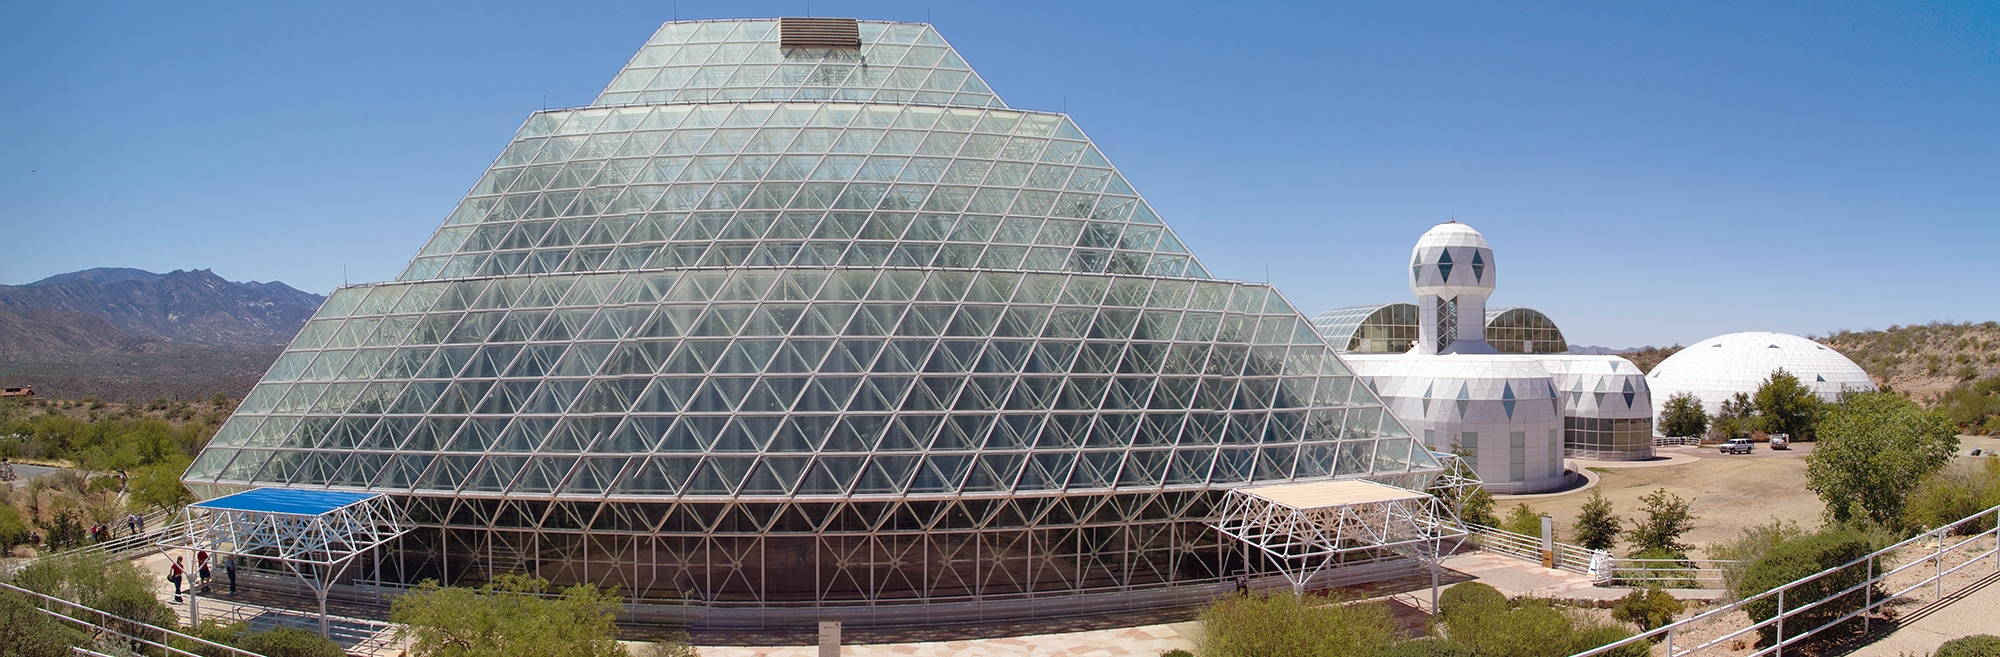 How Many Miles From >> Biosphere 2: Why an Eccentric Ecological Experiment Still ...